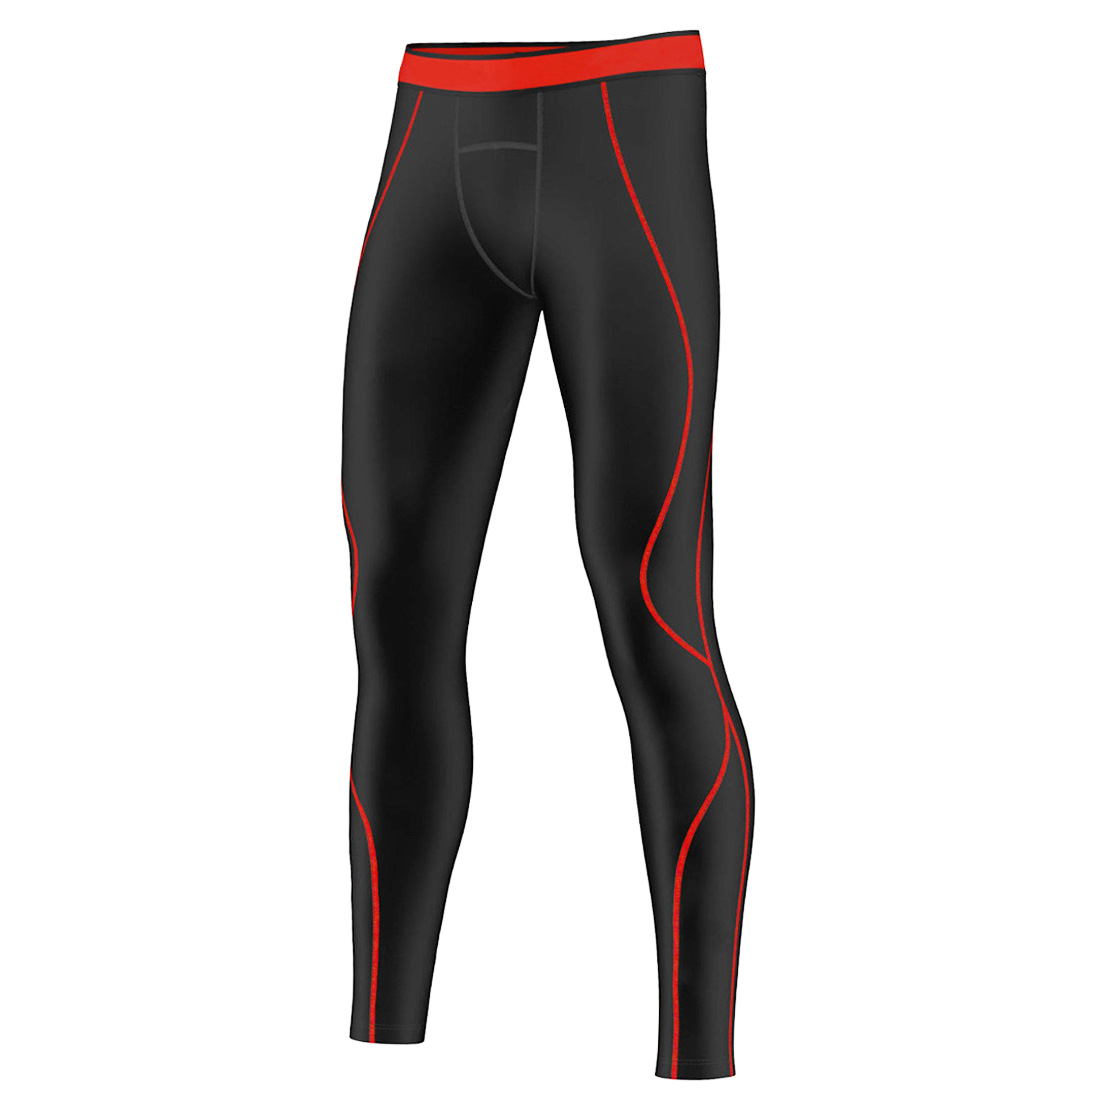 Best Men's Compression Pants to Speed Up Muscle Recovery. Increase blood flow to your muscles and speed up recovery post-workout with help from these men's compression pants.